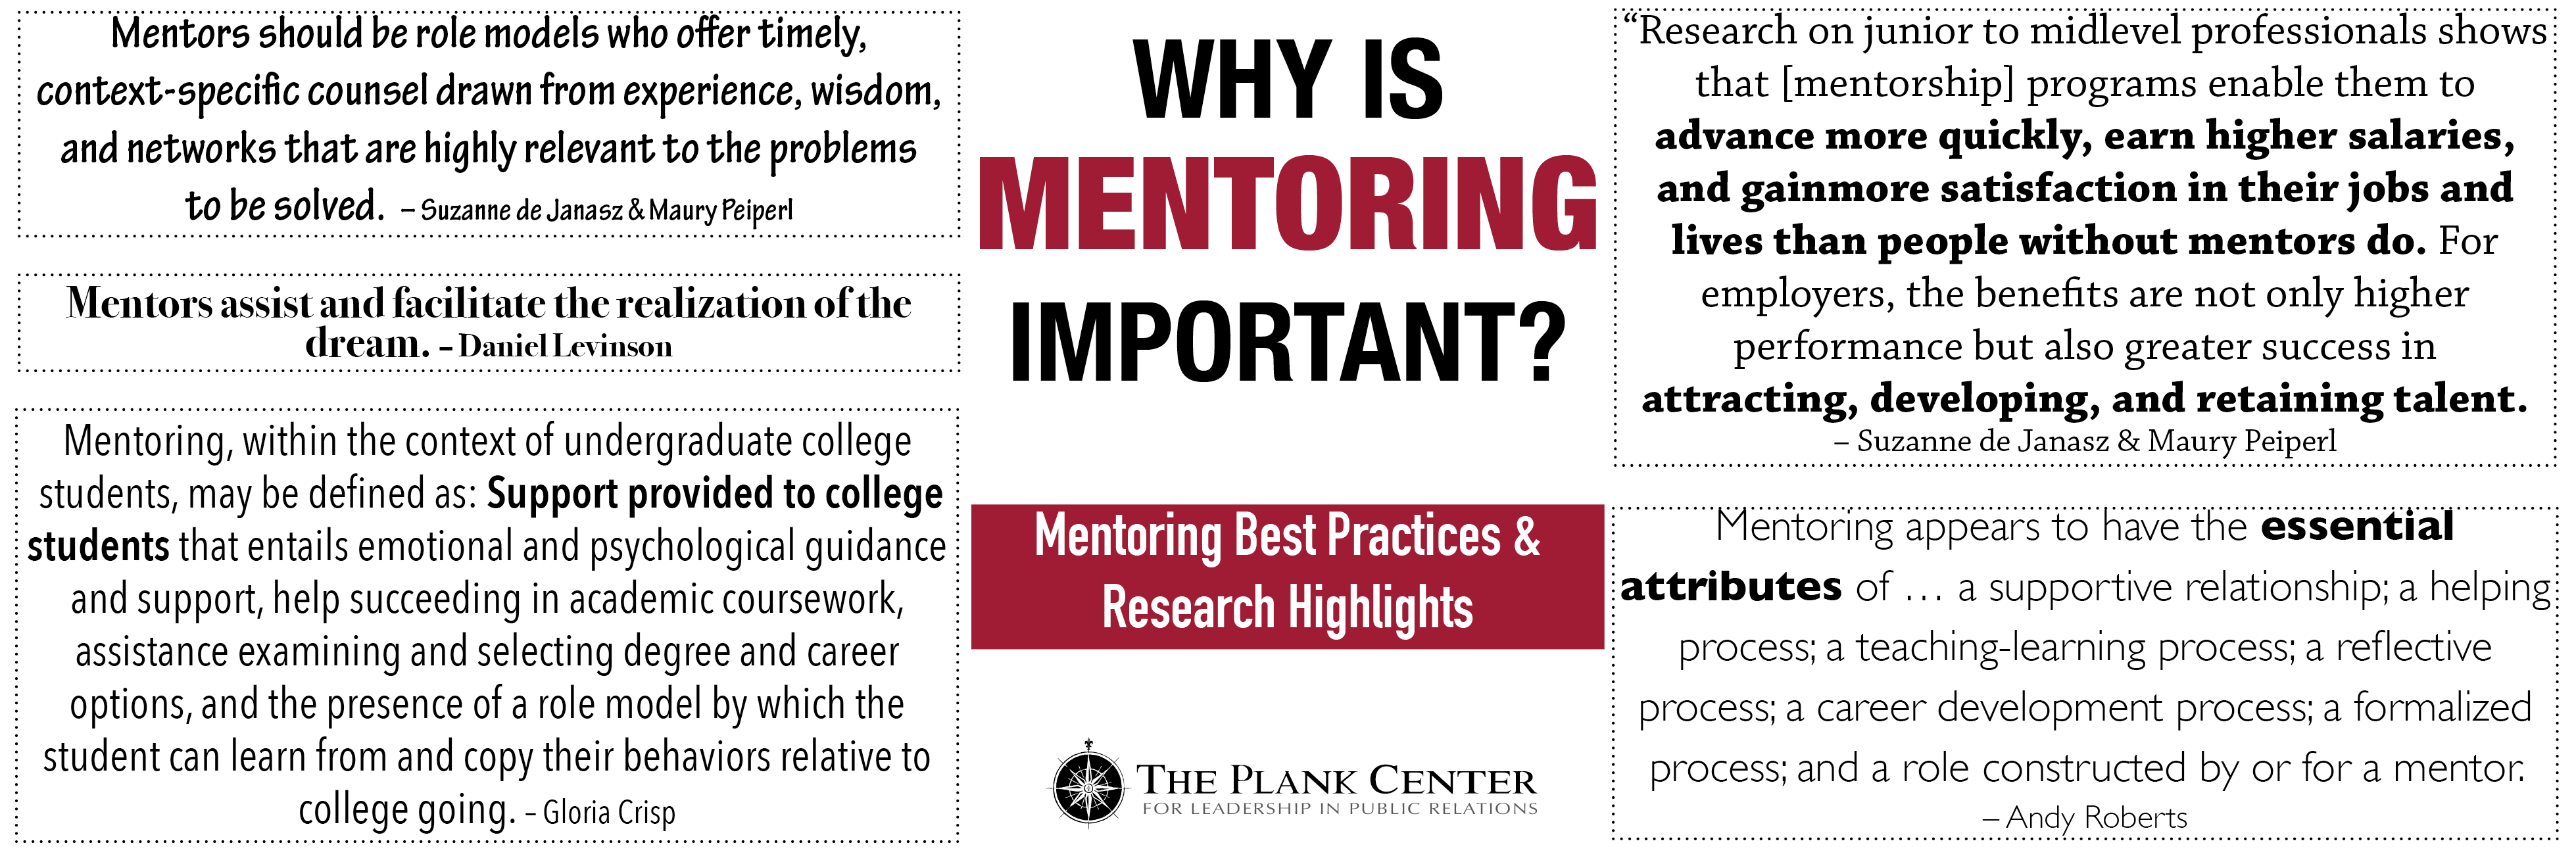 Why is mentoring so important?